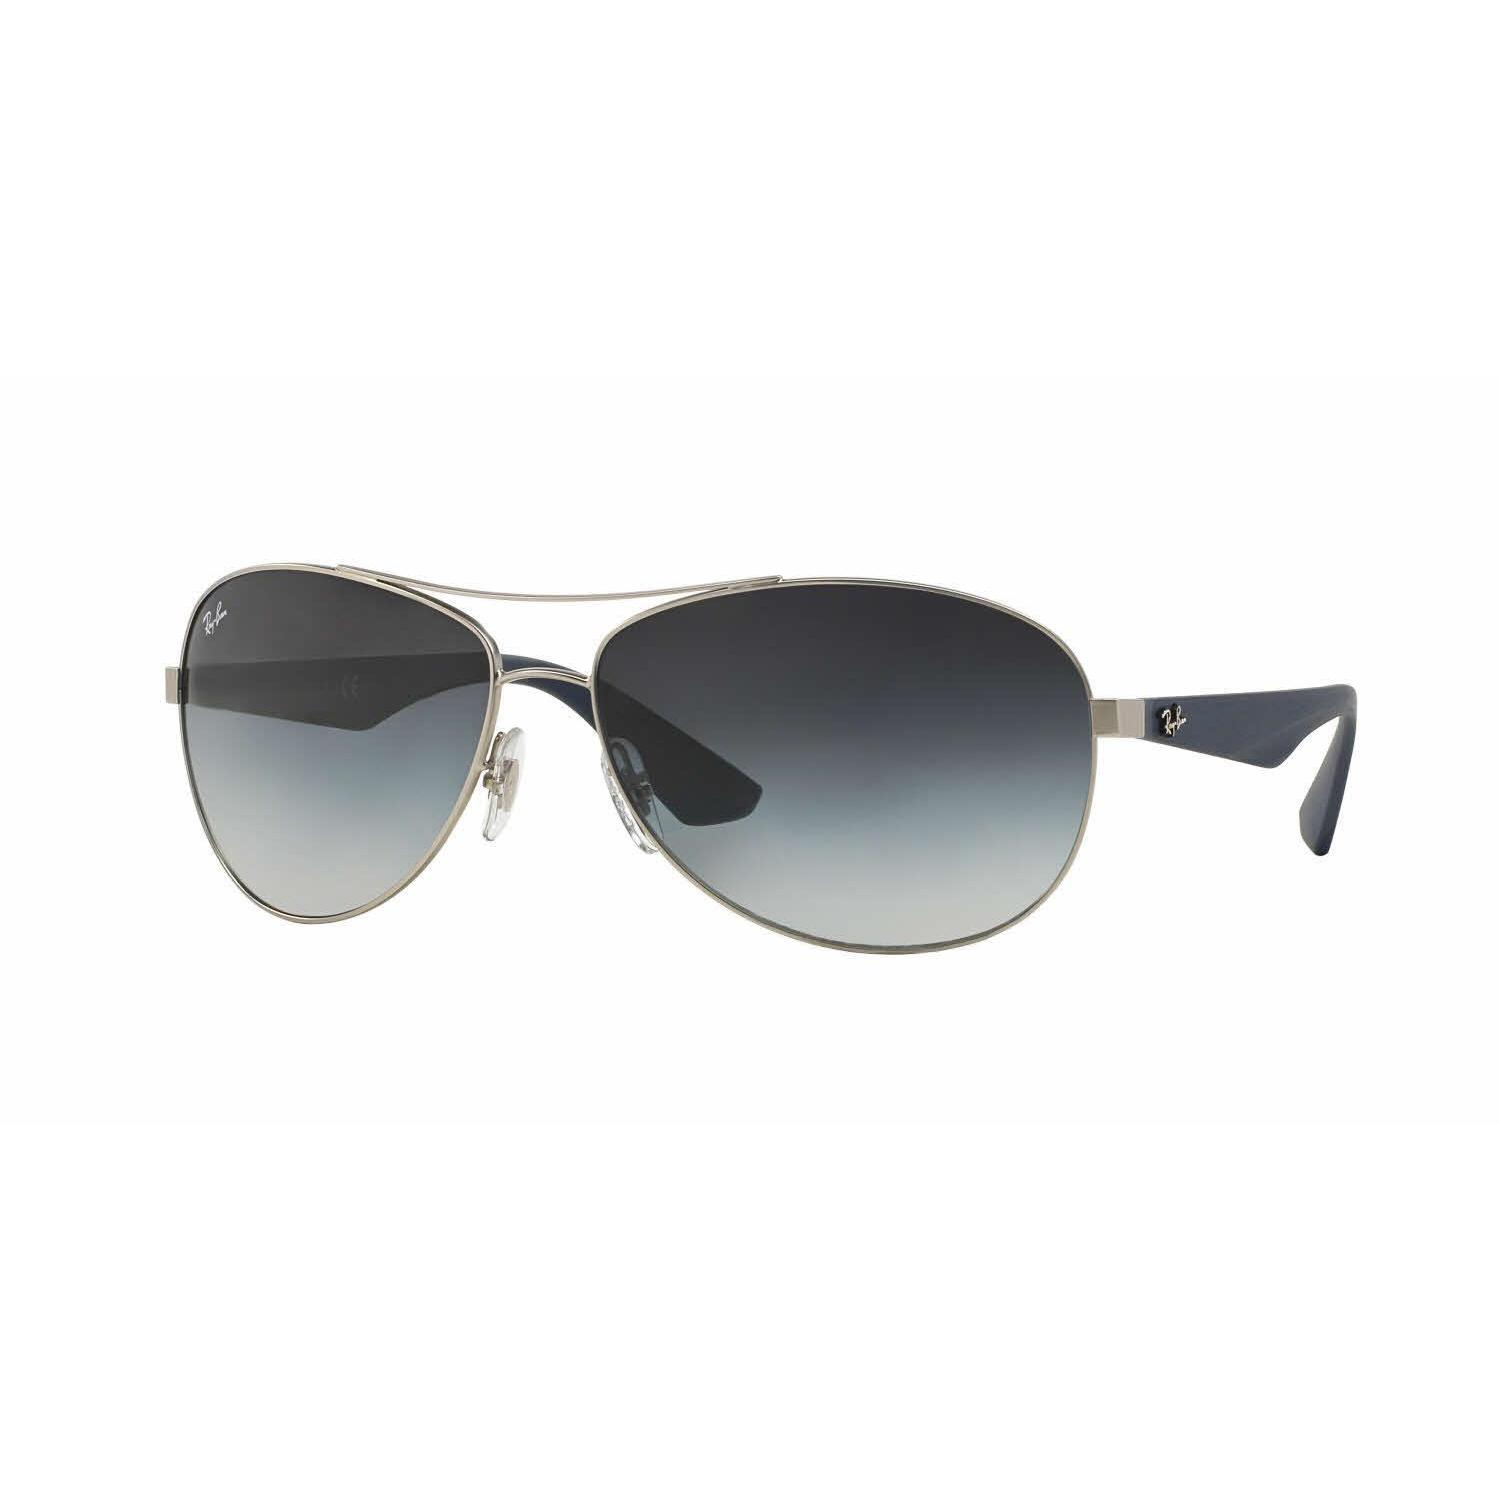 0581b8b9036 Shop Ray Ban Mens RB3526 019 8G Plastic Metal Cateye Sunglasses - Free  Shipping Today - Overstock - 13469134